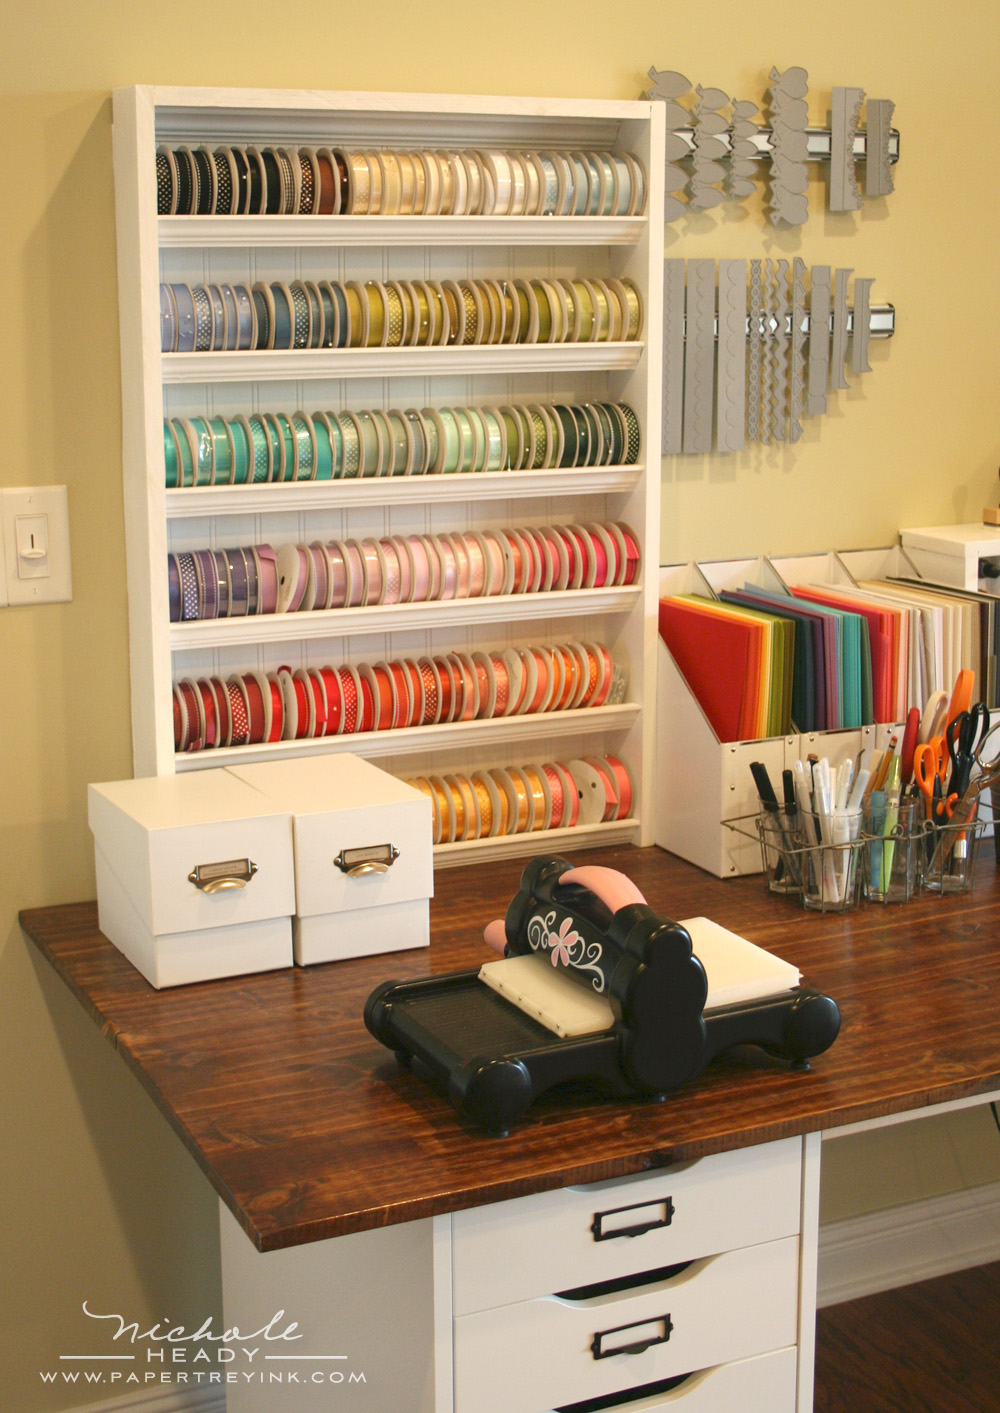 Scrapbook ideas with ribbon - Die Cutting Area